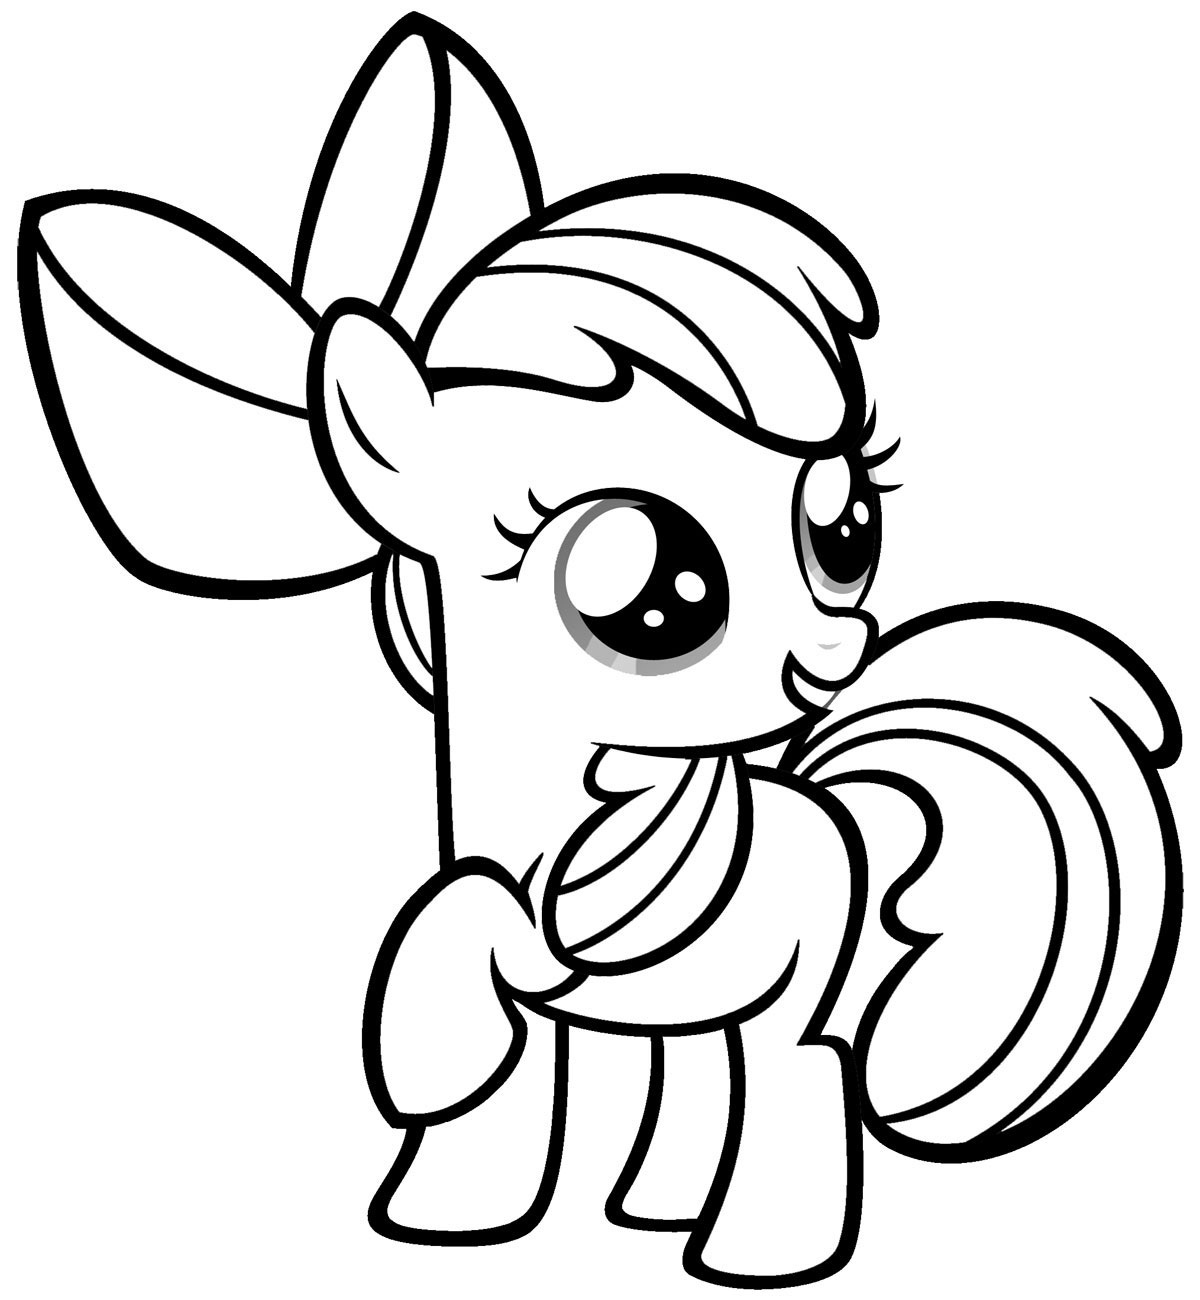 my little pony friendship is magic colouring pages my little pony colouring sheets applebloom my little magic pony colouring pages my is friendship little